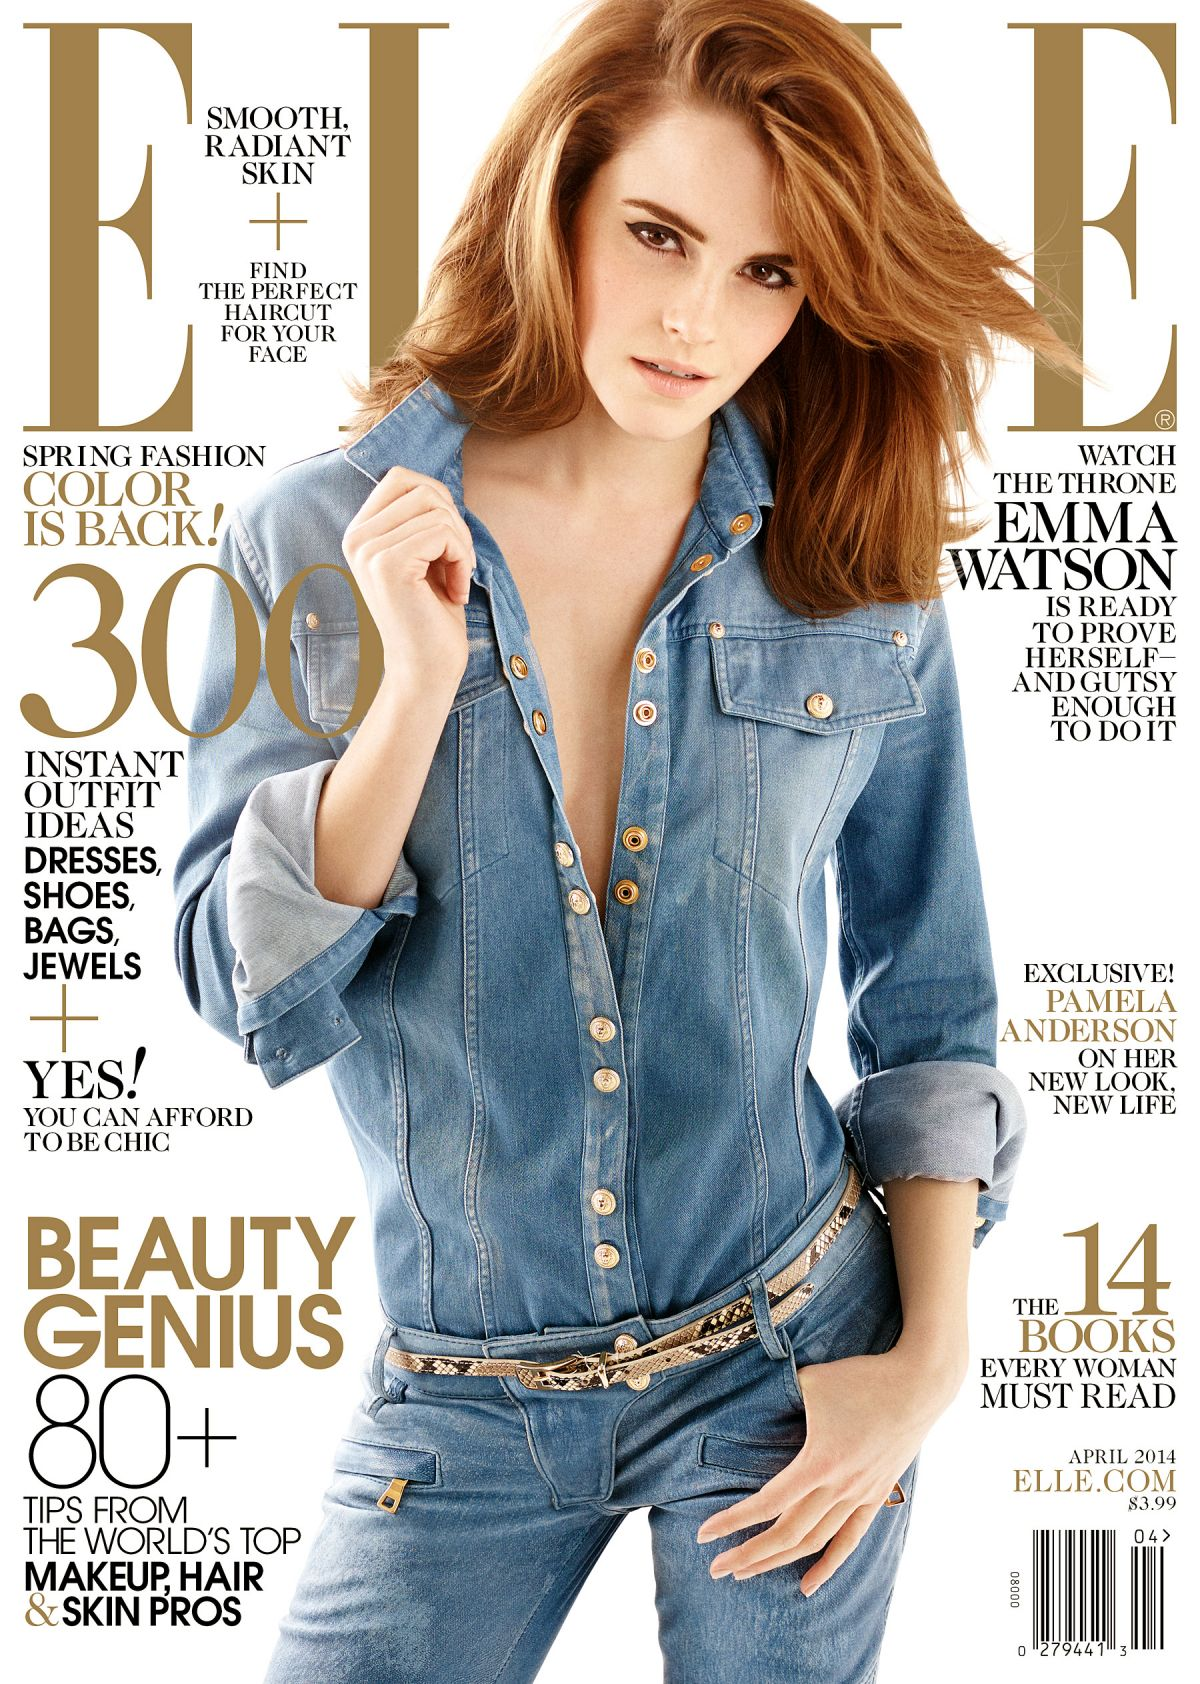 Elle Magazine France February March: EMMA WATSON In Elle Magazine, April 2014 Issue